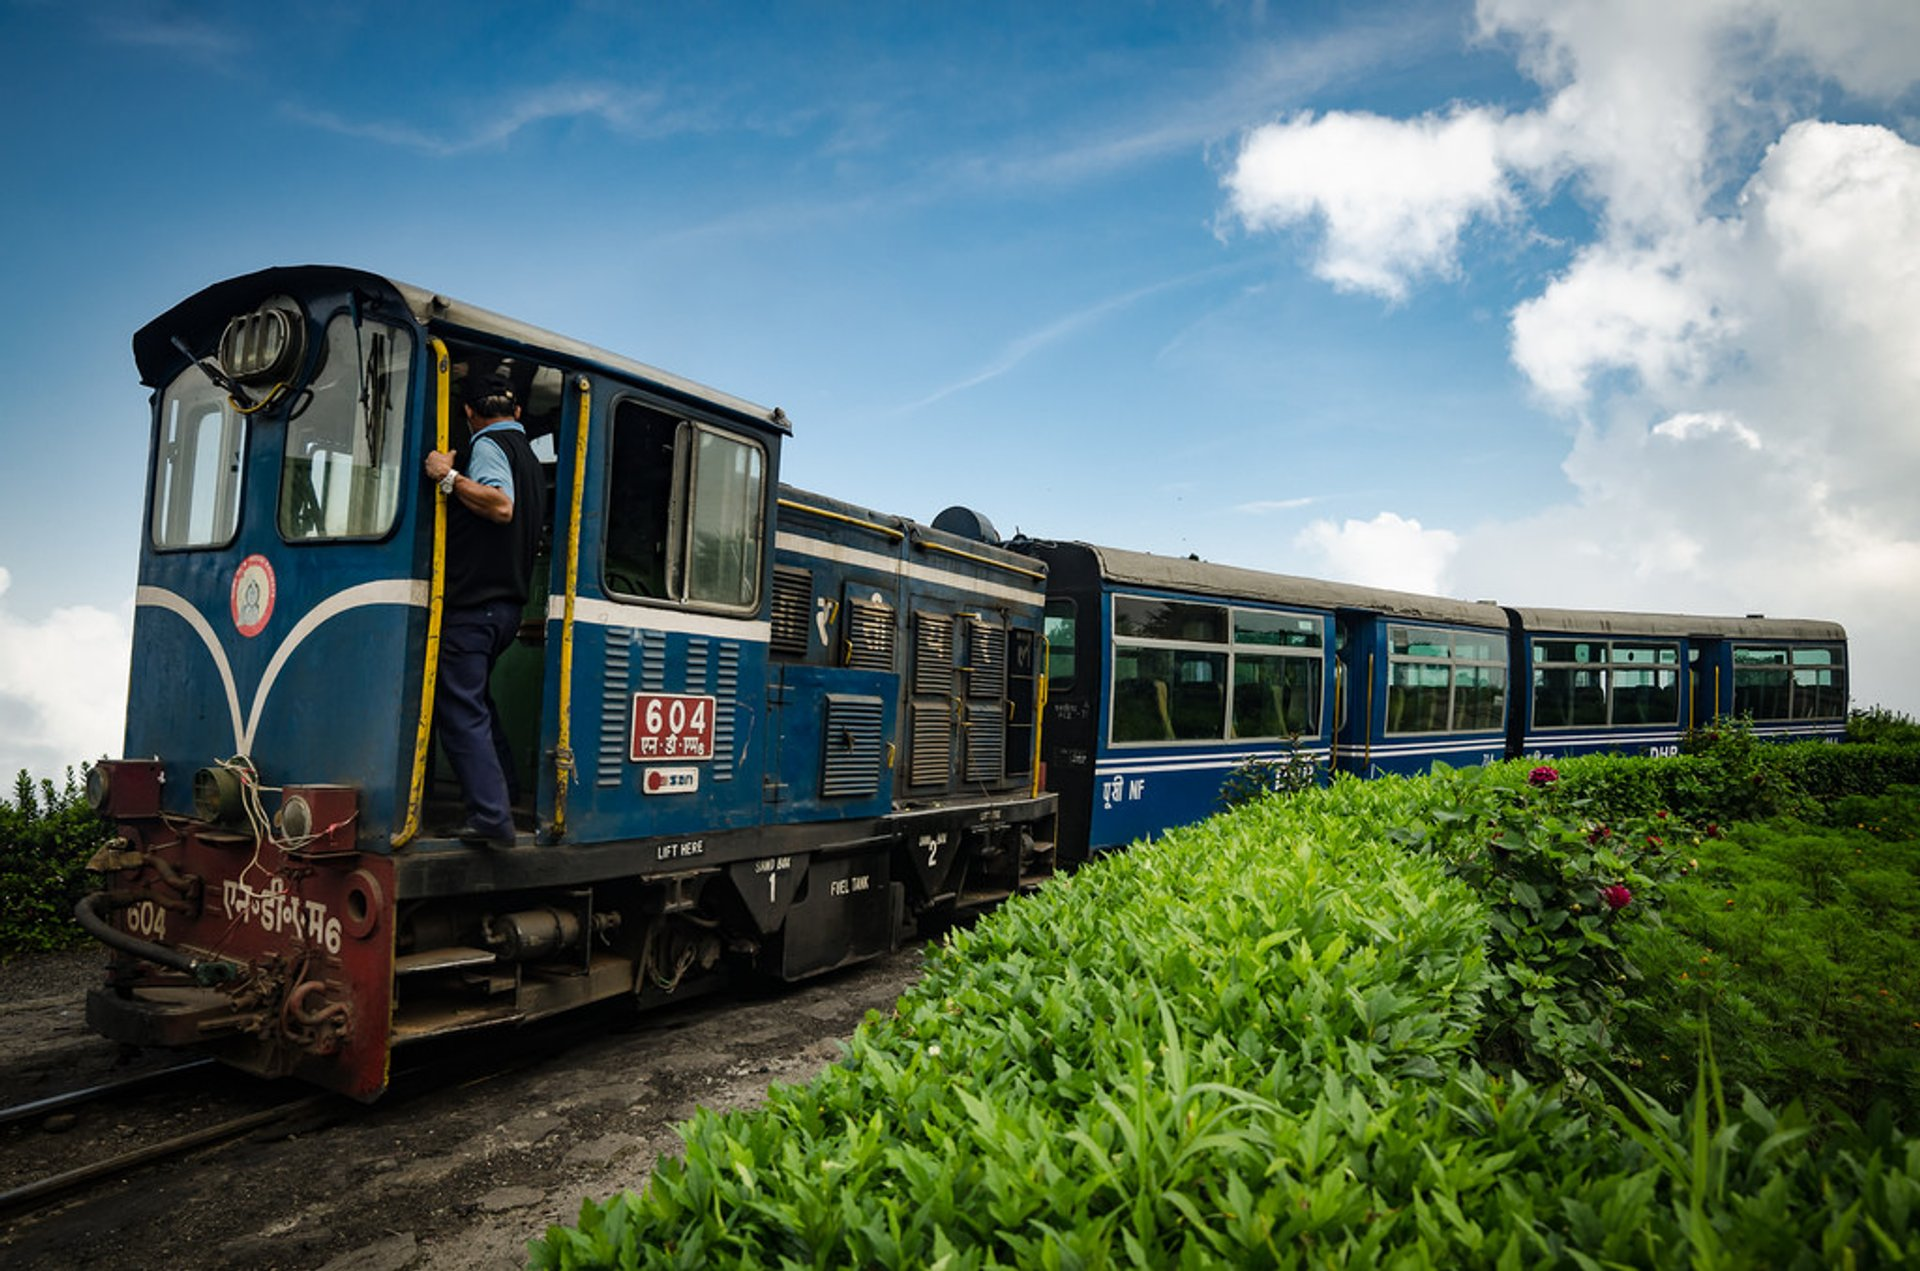 Darjeeling 'toy train' 2019